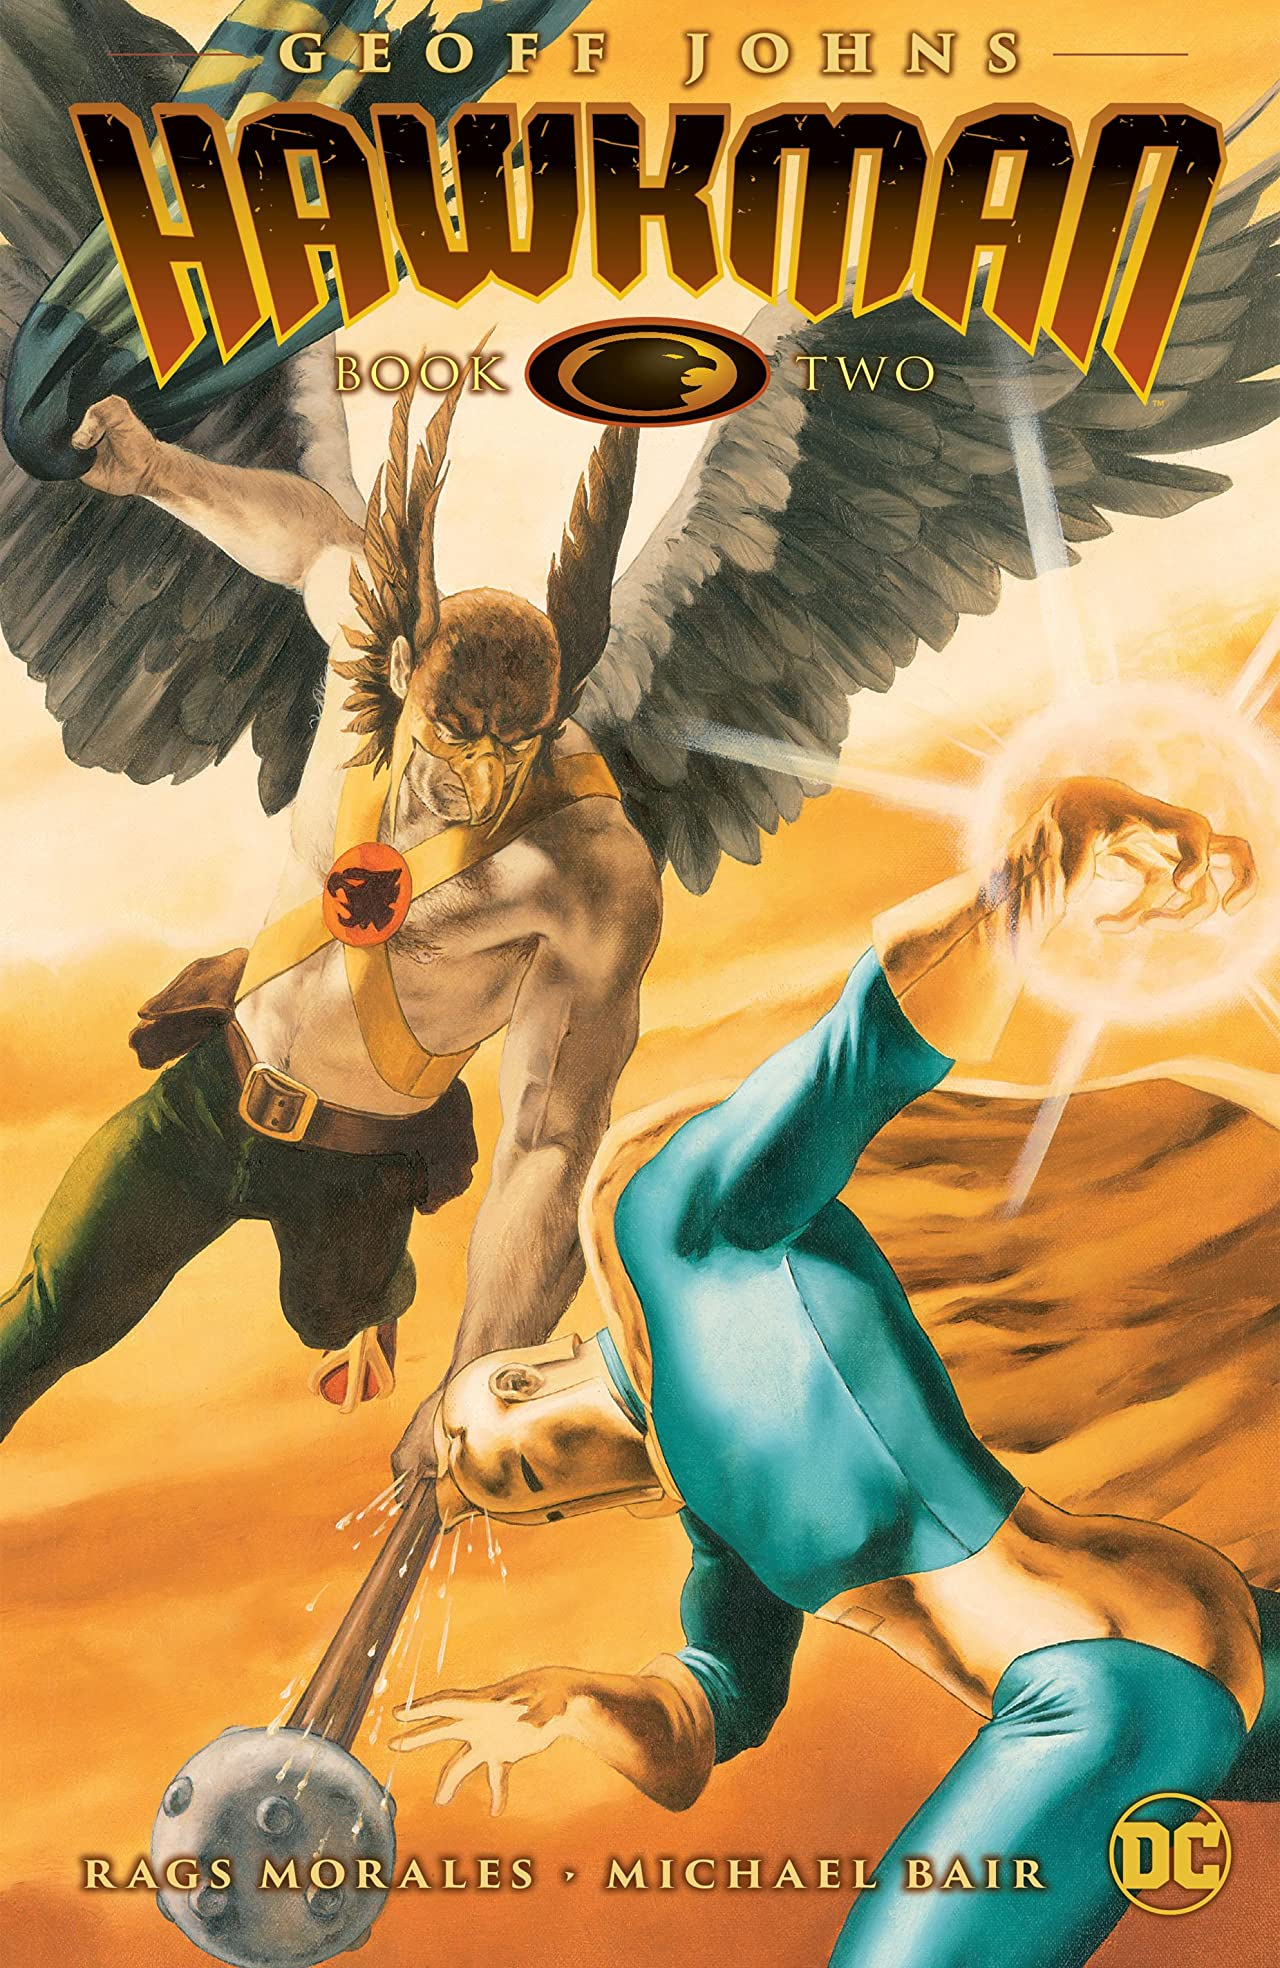 Hawkman by Geoff Johns Book Two